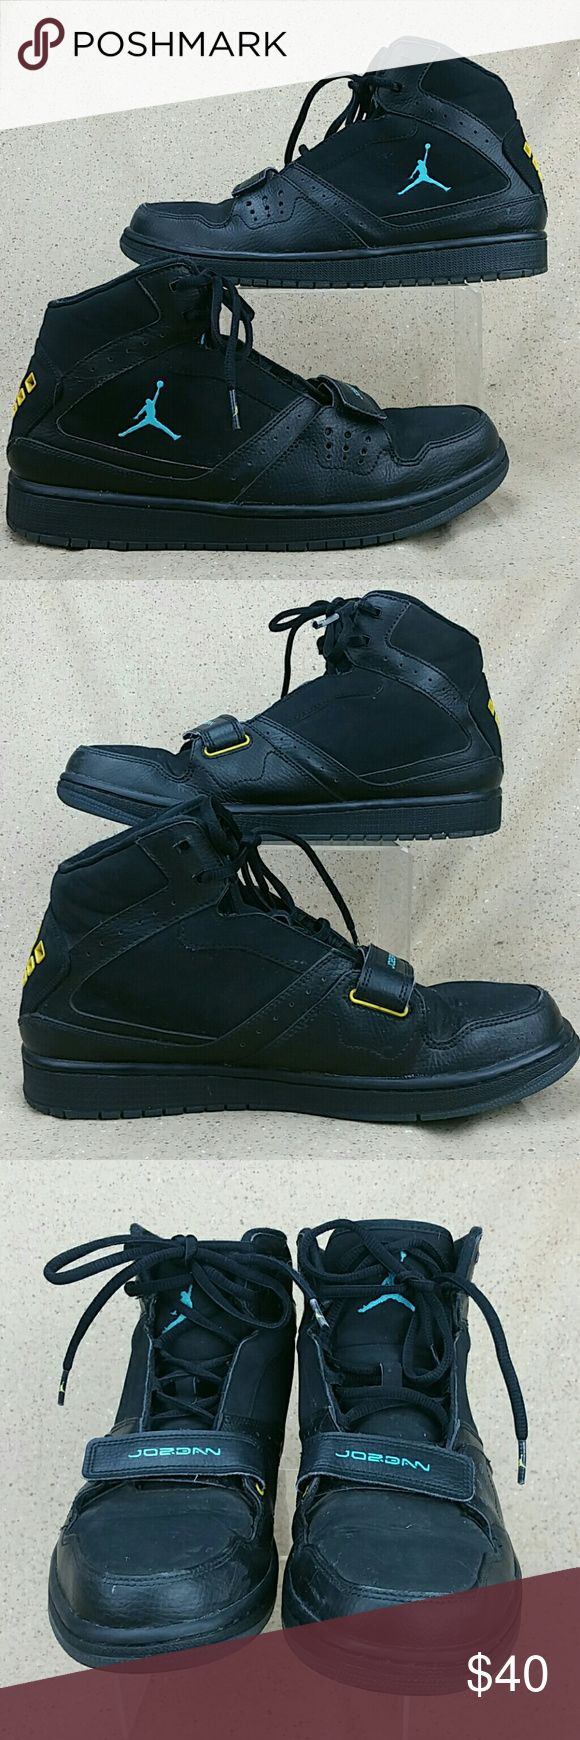 Nike Jordan Flight 1 Basketball Shoes Black M 9.5 These shoes are pre-owned in nice condition. Gentle wear on the outside from use includes creases and scuffs. Slight wear to the bottoms. Look over the pictures carefully before purchasing. Nike Shoes Athletic Shoes